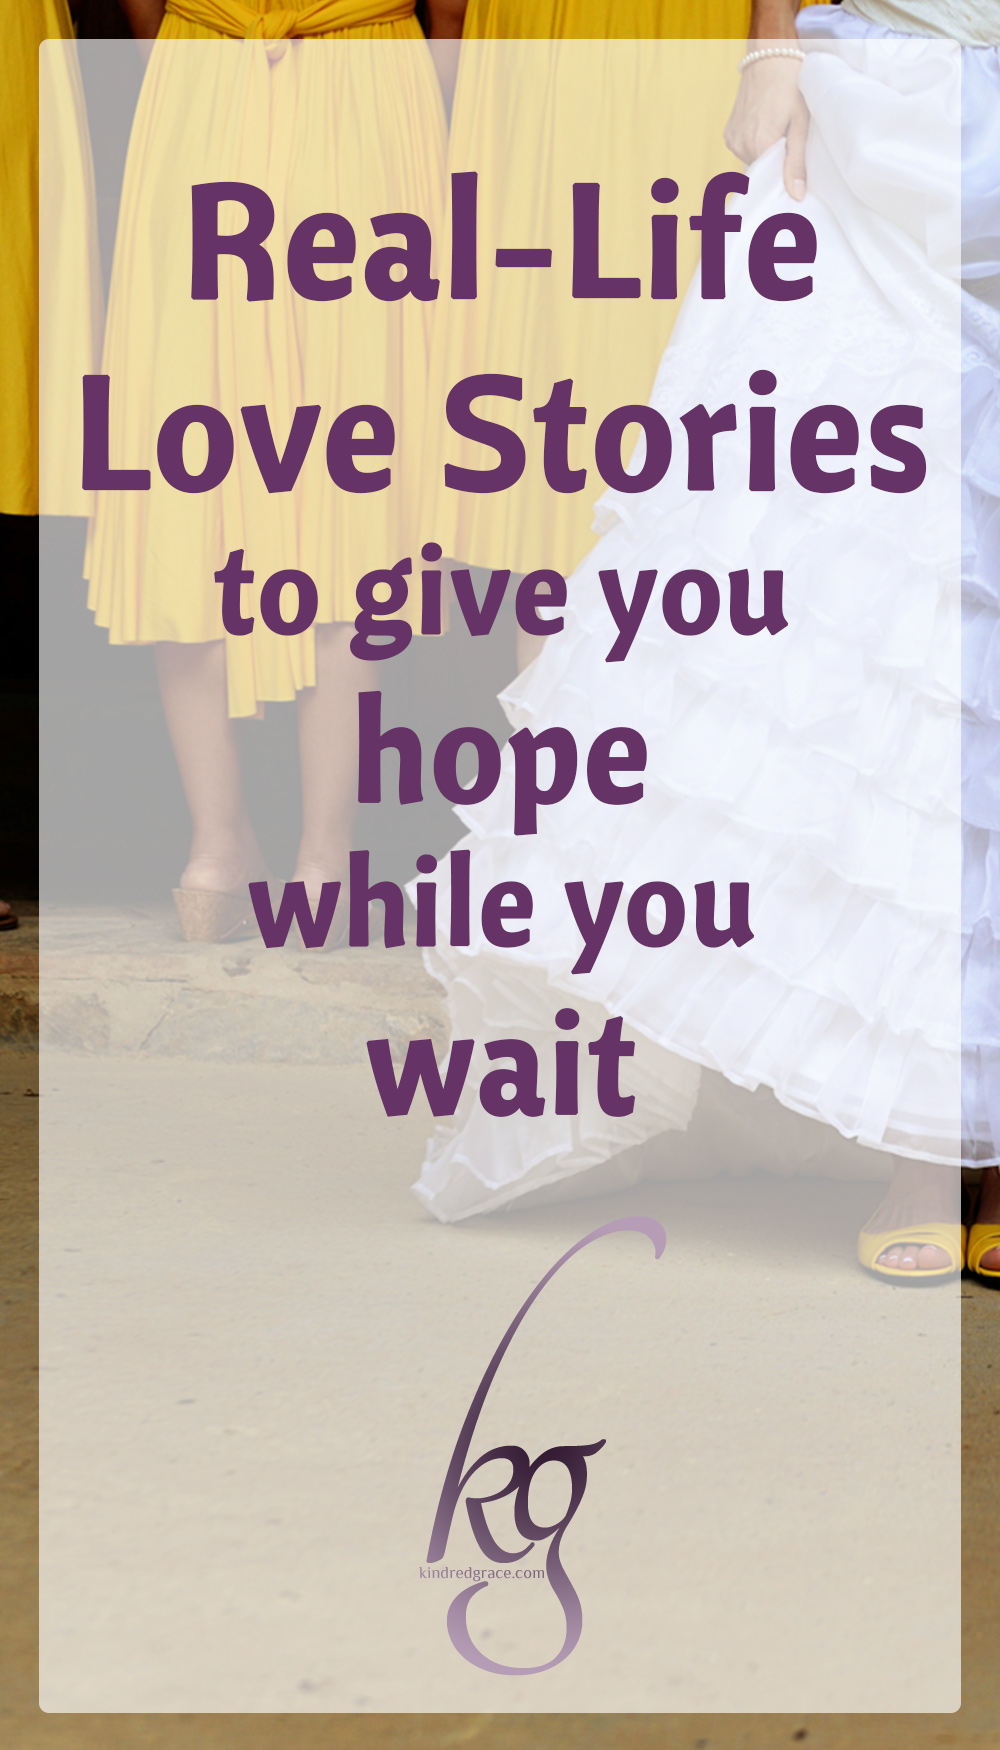 True stories show me another facet of our Heavenly Father. They help me glimpse how He works, and Who He is. While we're waiting, why not enjoy these stories that – in the end – are really all about Him? via @KindredGrace